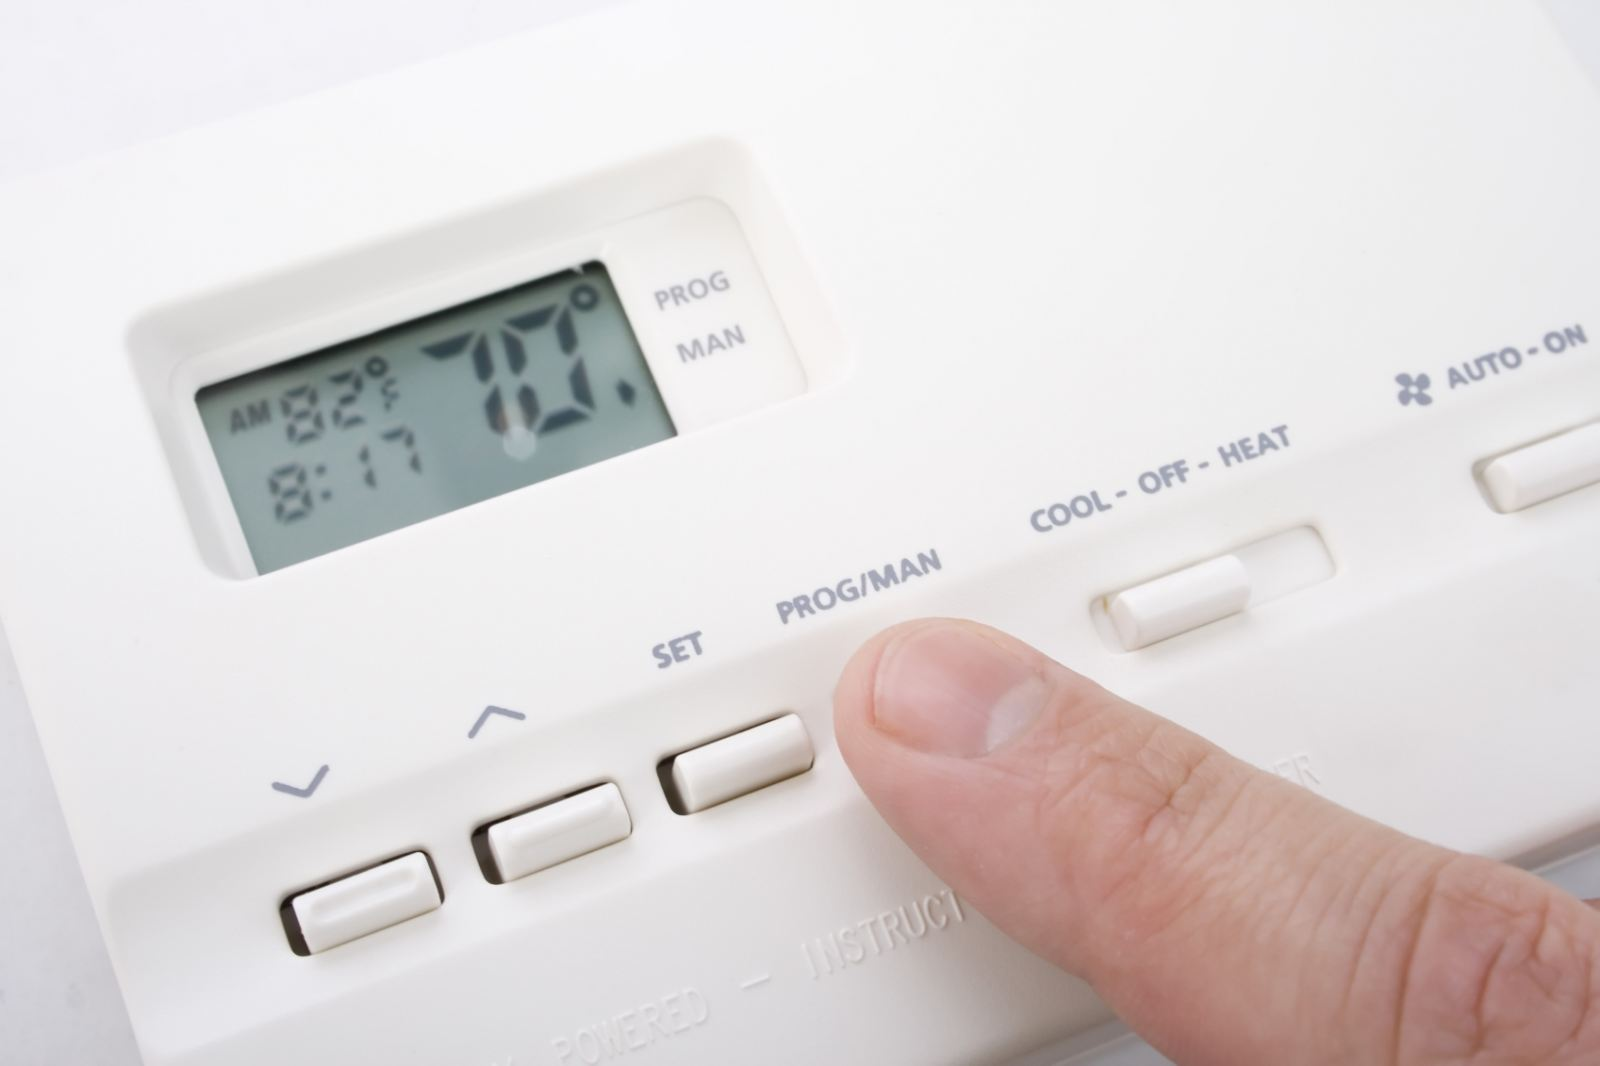 Photo of a Programmable Thermostat